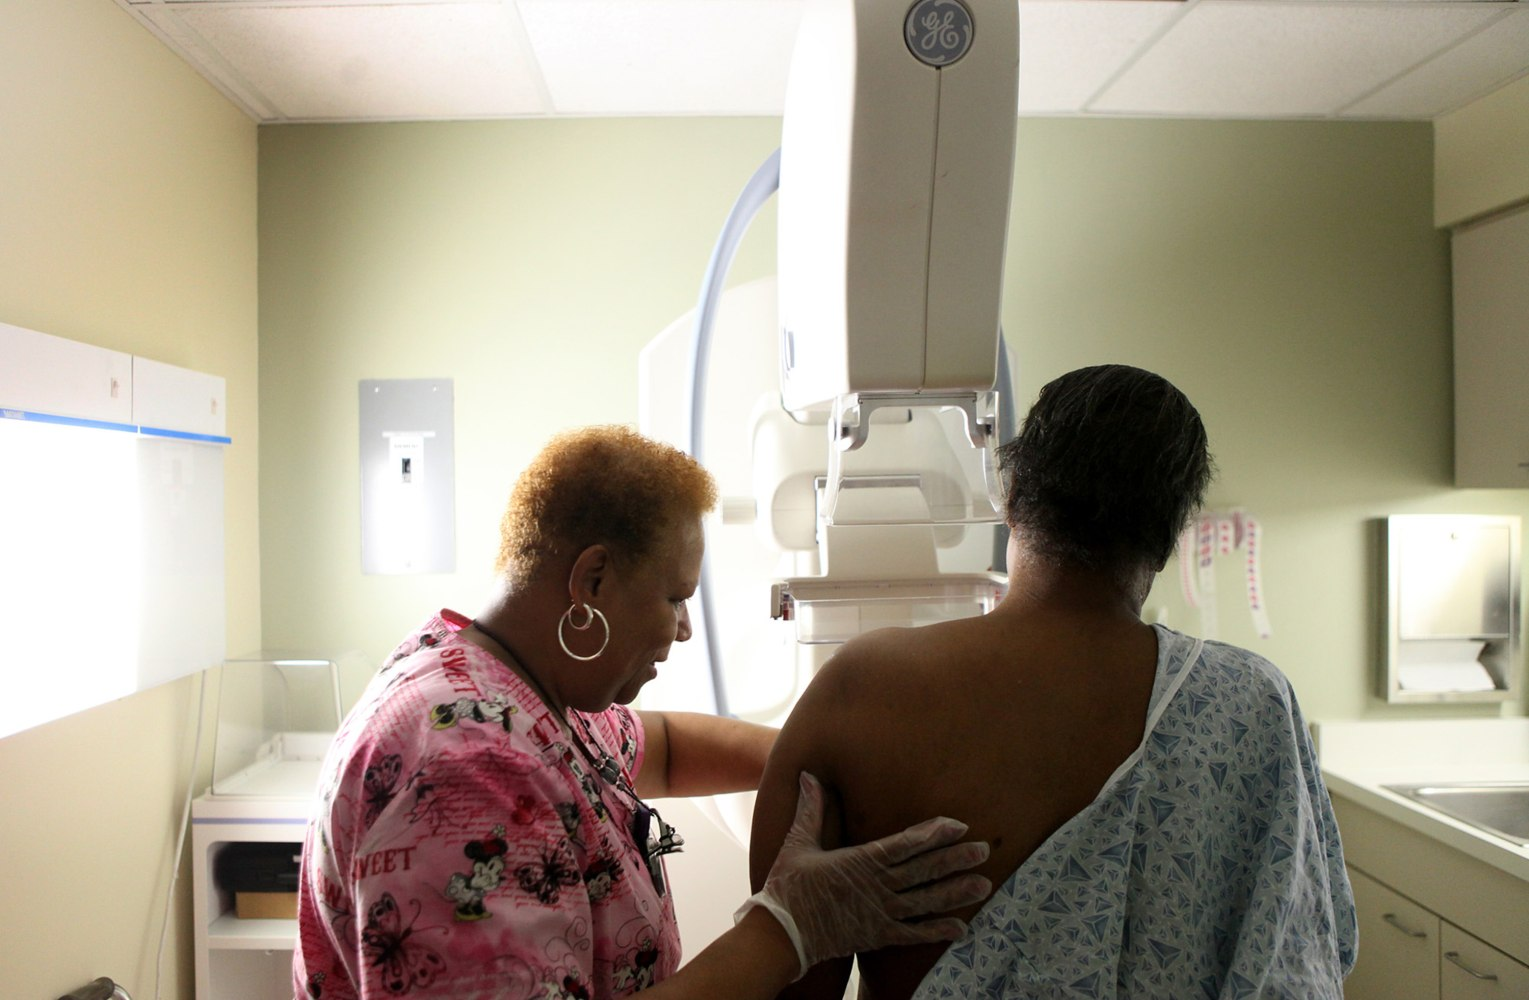 Many women uninformed about breast cancer surgery options